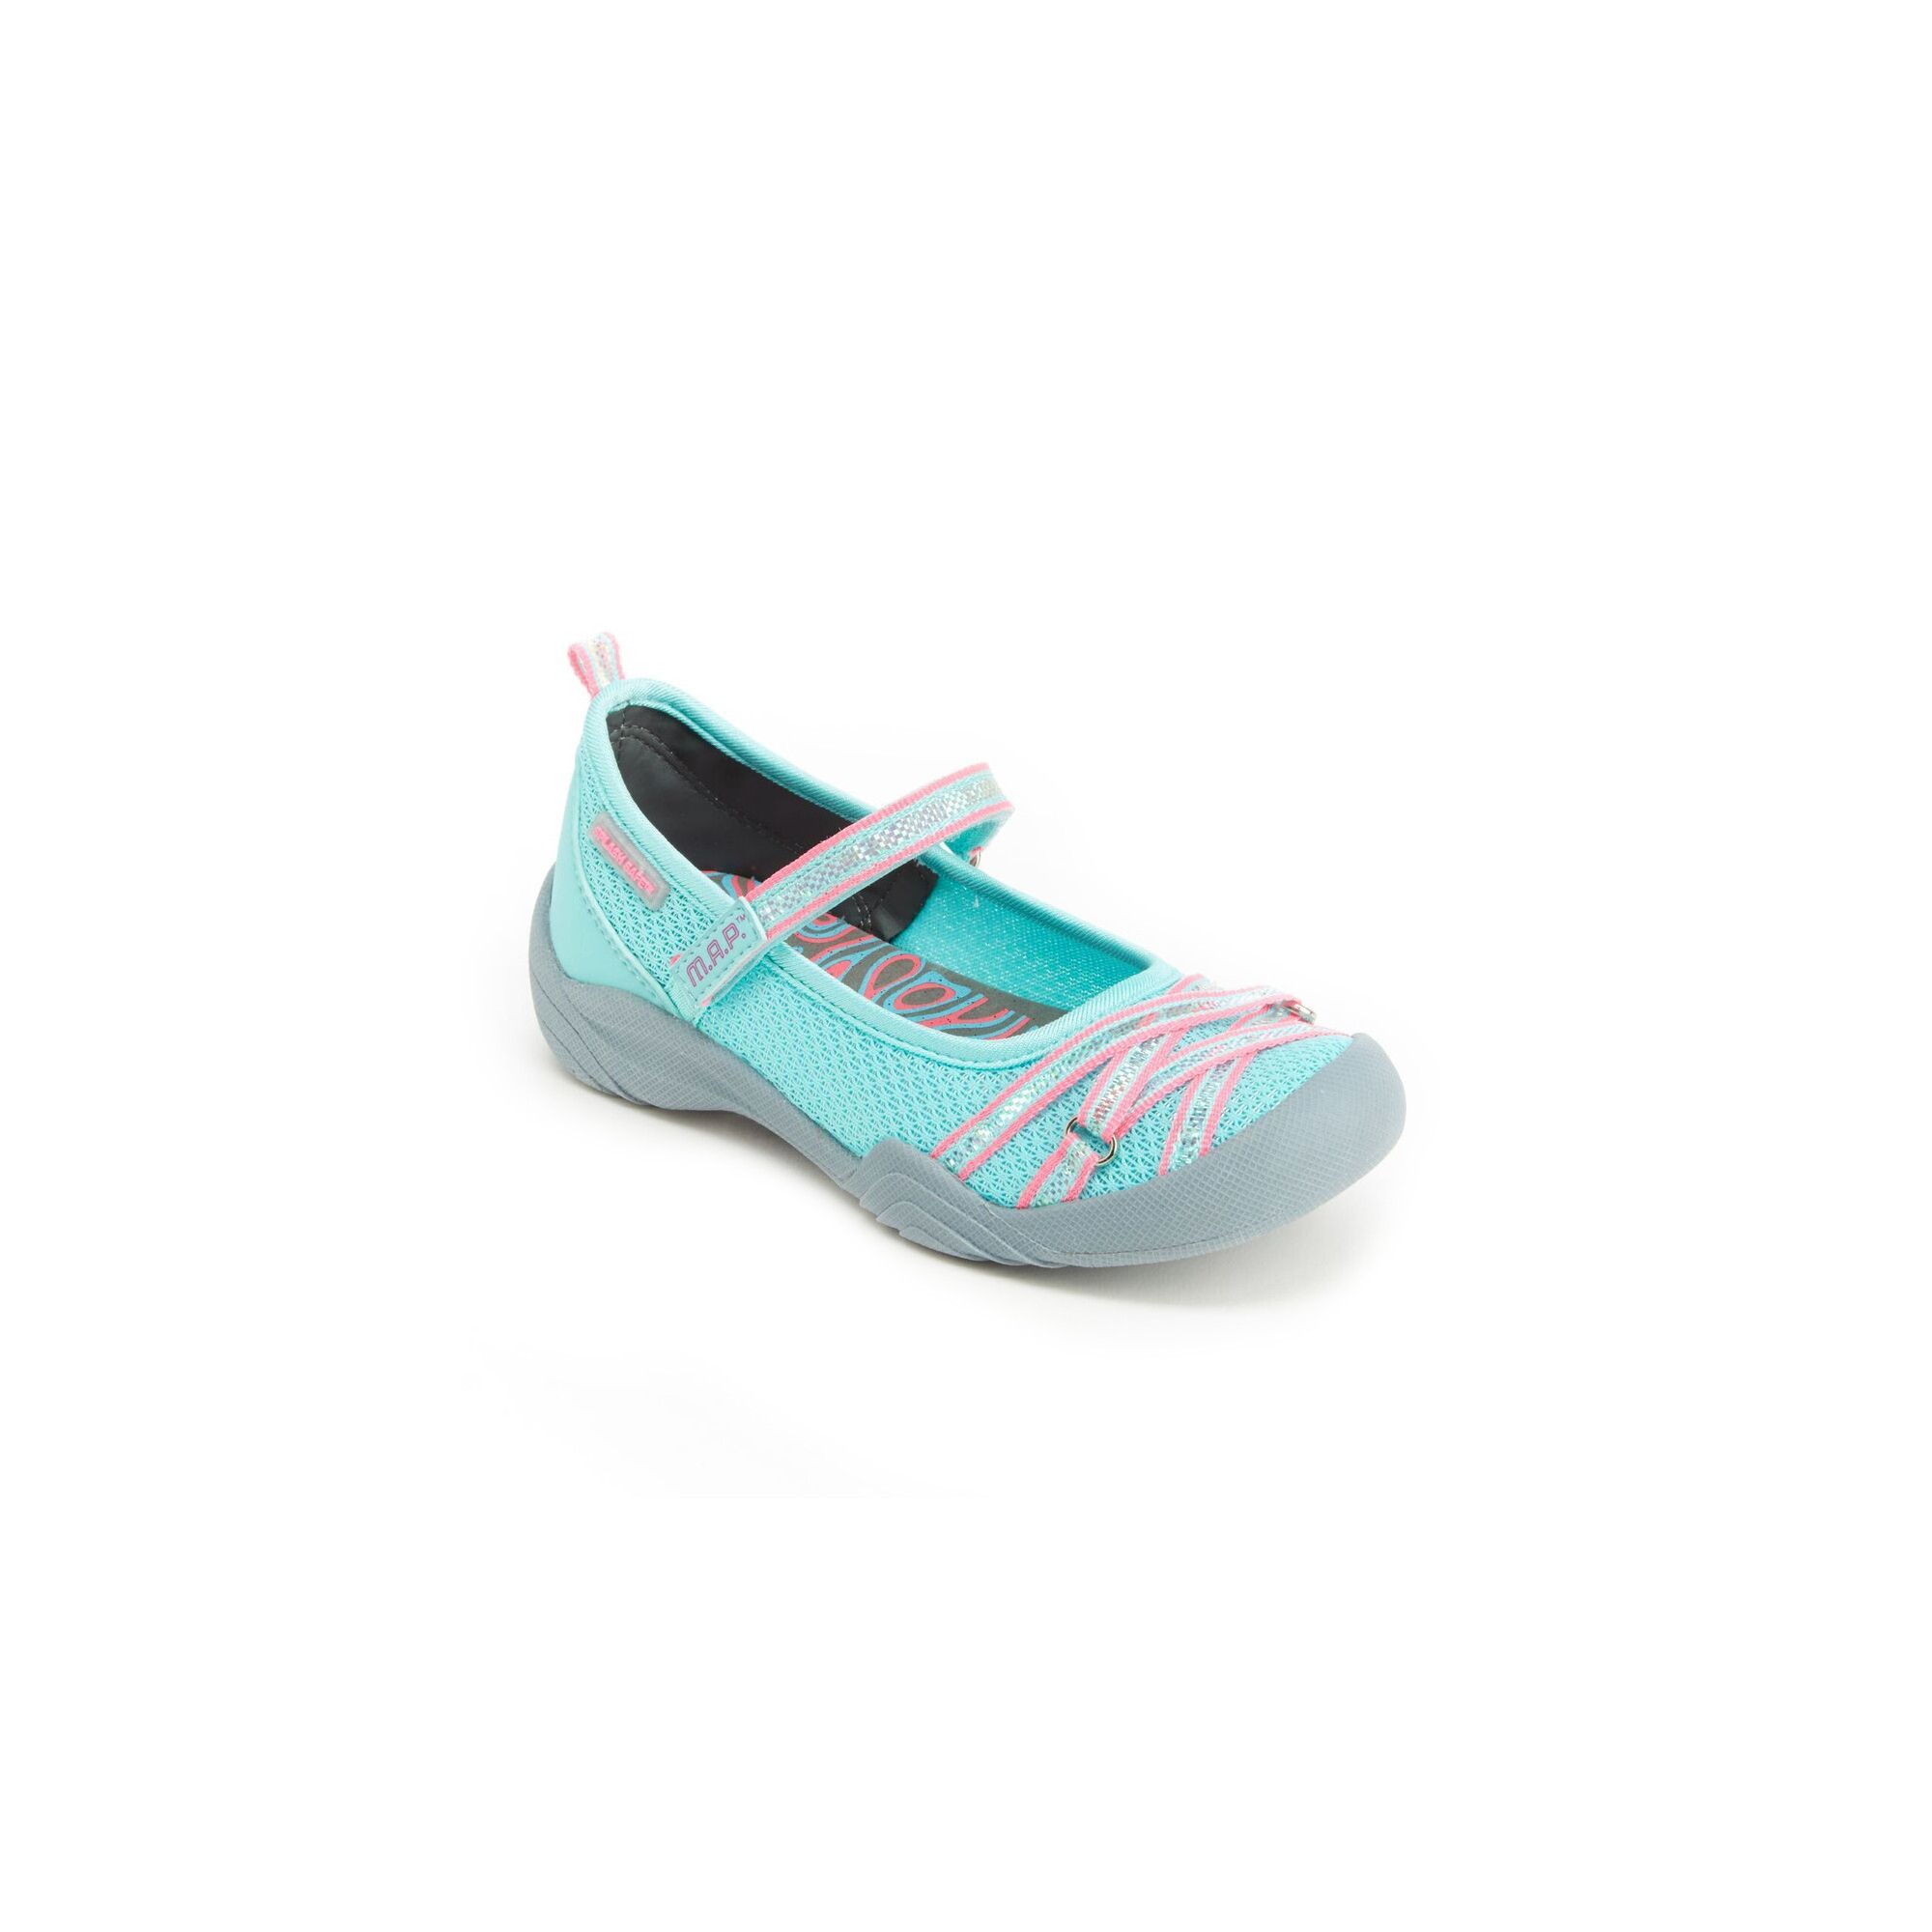 Girls\' M.A.P. Lilith Mary Jane Shoes - Mint/Neon (Green/Neon) 13 ...